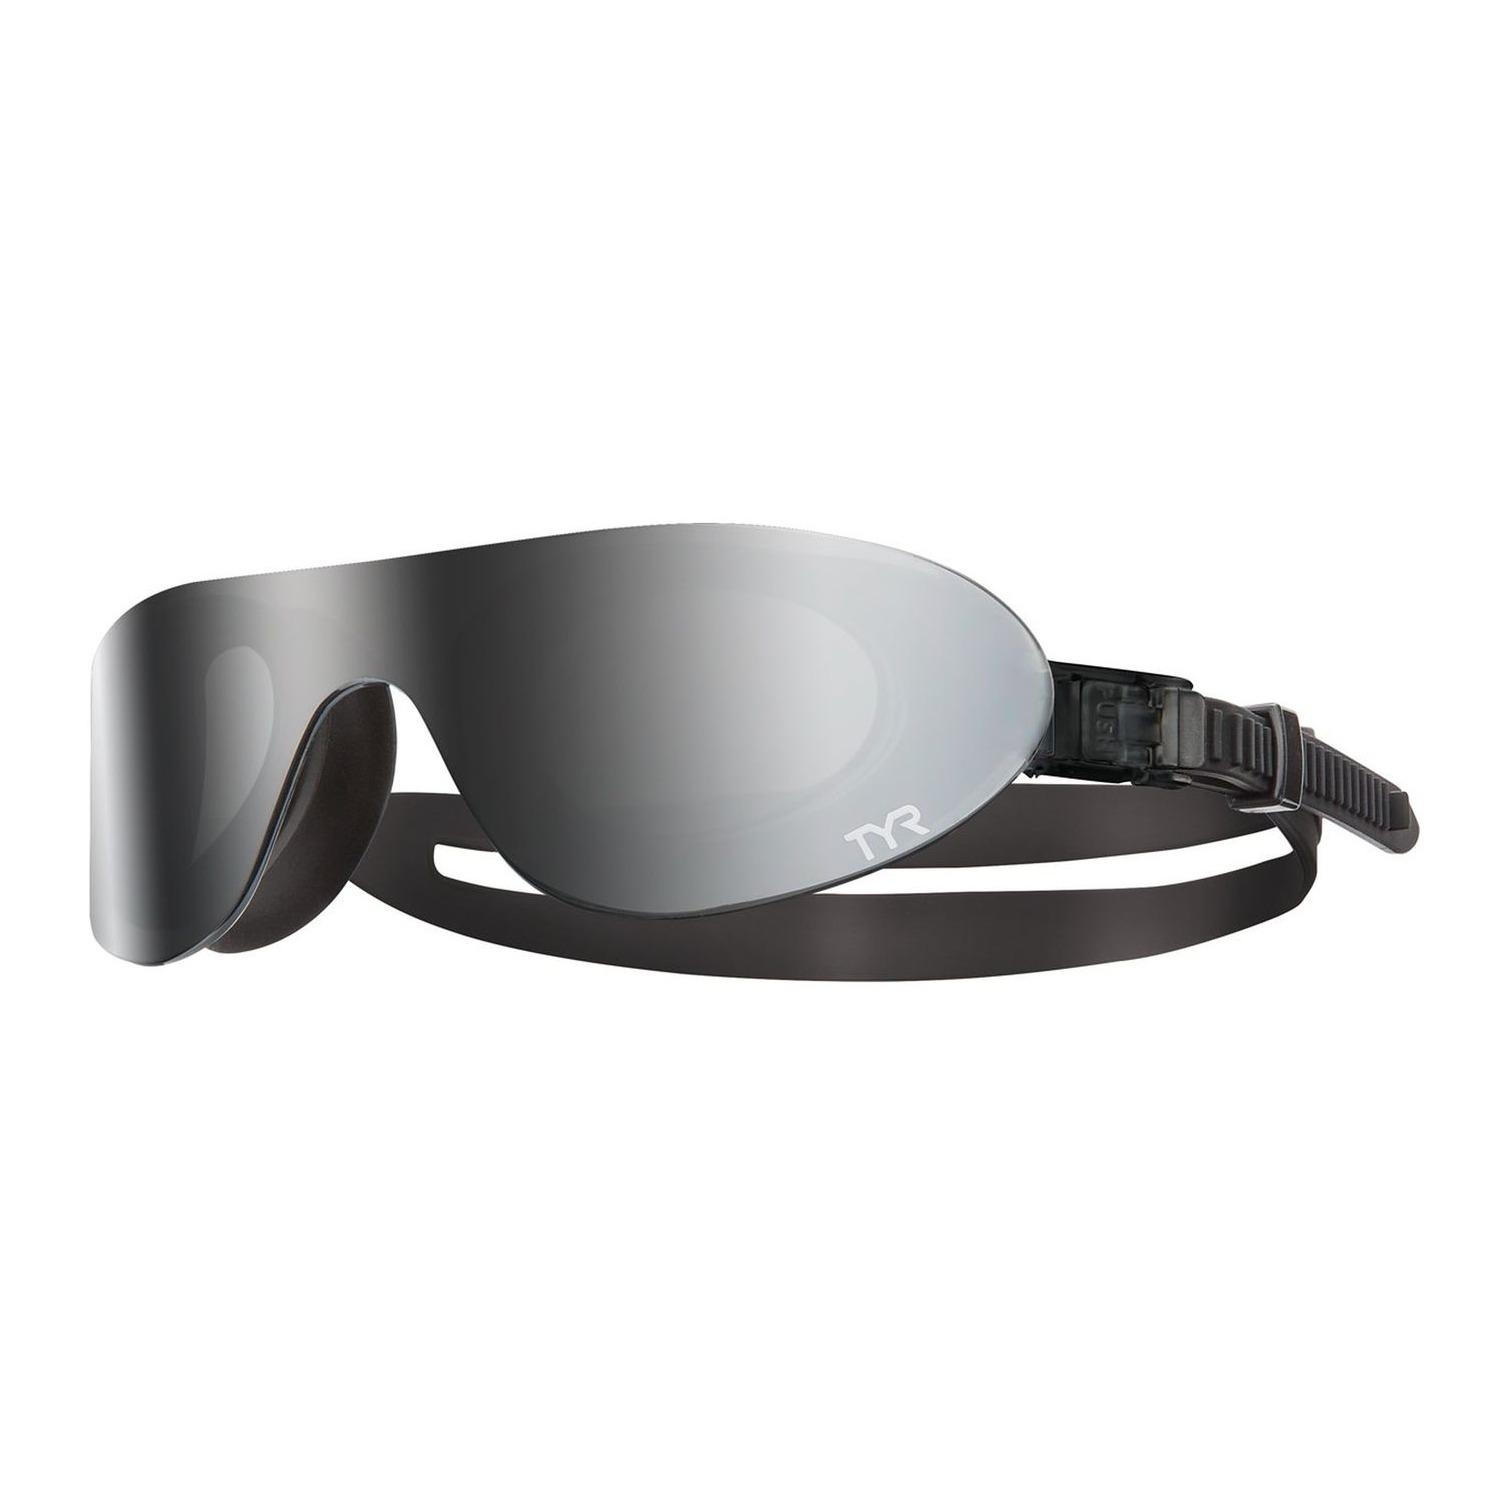 Sale Tyr Swim Shades Mirrored Tyr On Singapore